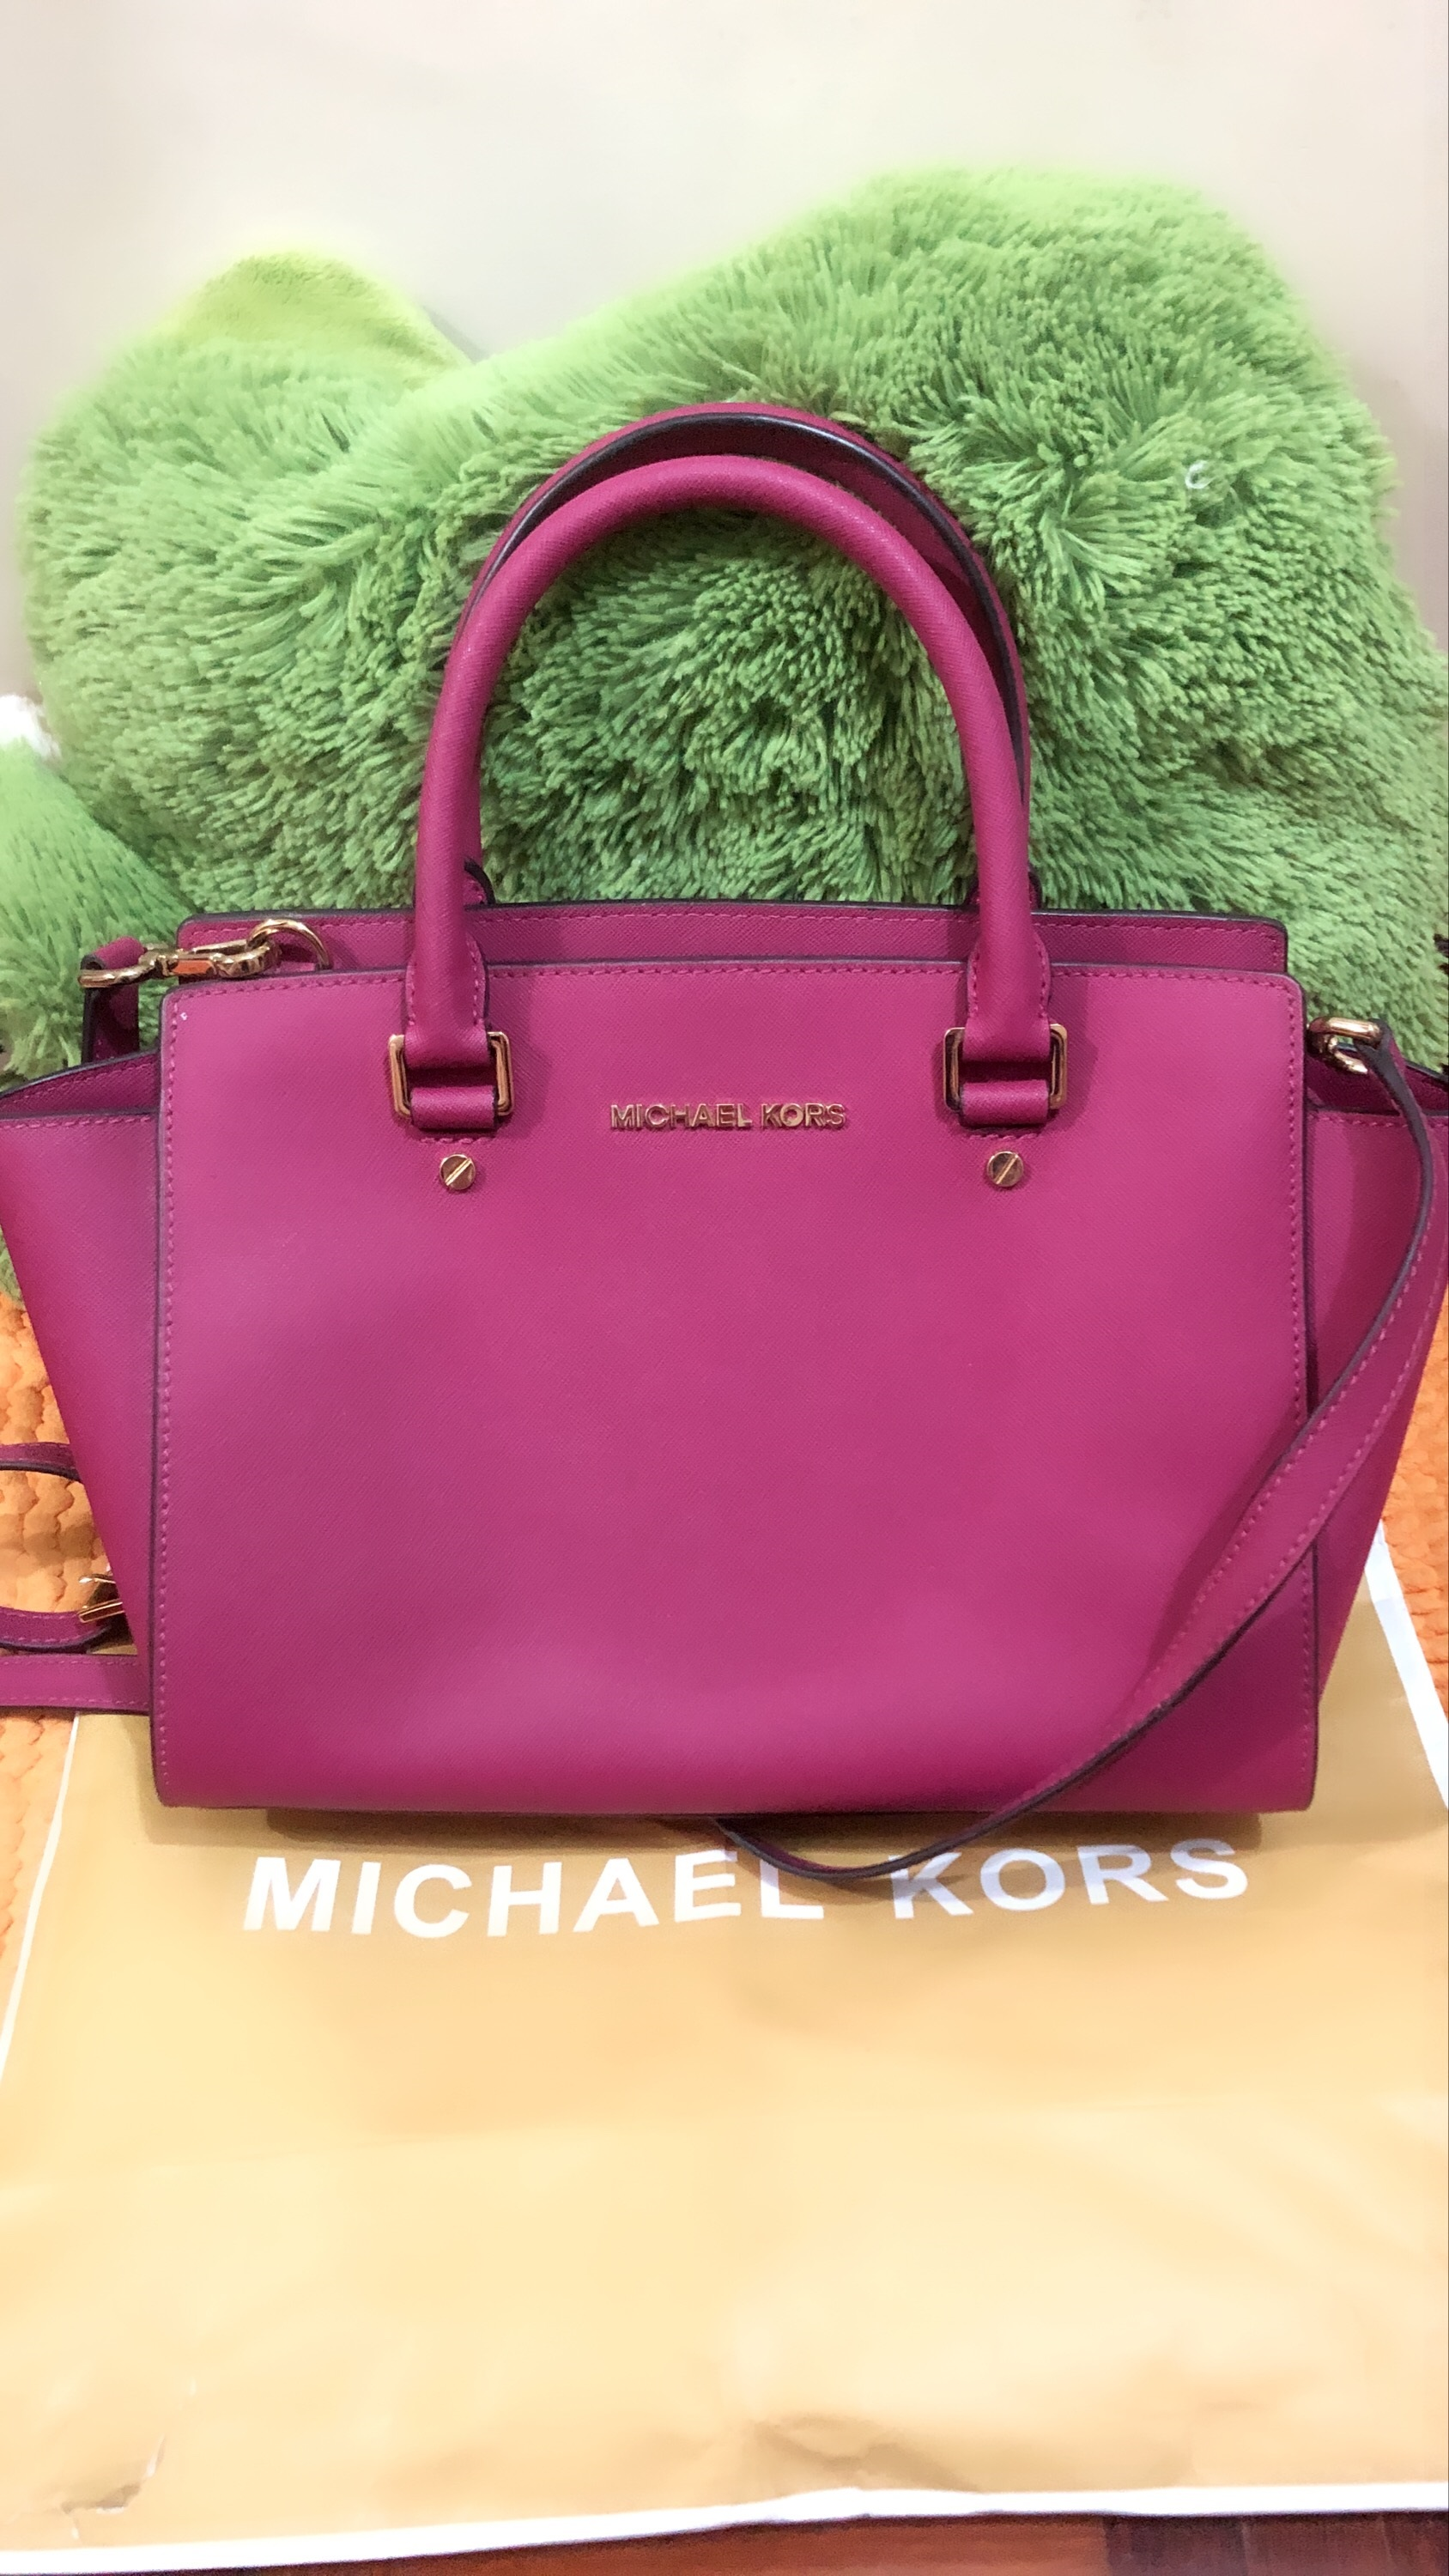 b9cb4af86f1b Michael Kors MK Selma Medium Saffiano Leather Satchel Gold-tone hardware  with MK logo lettering at front; signature medallion charm Condition :  10/10 ...